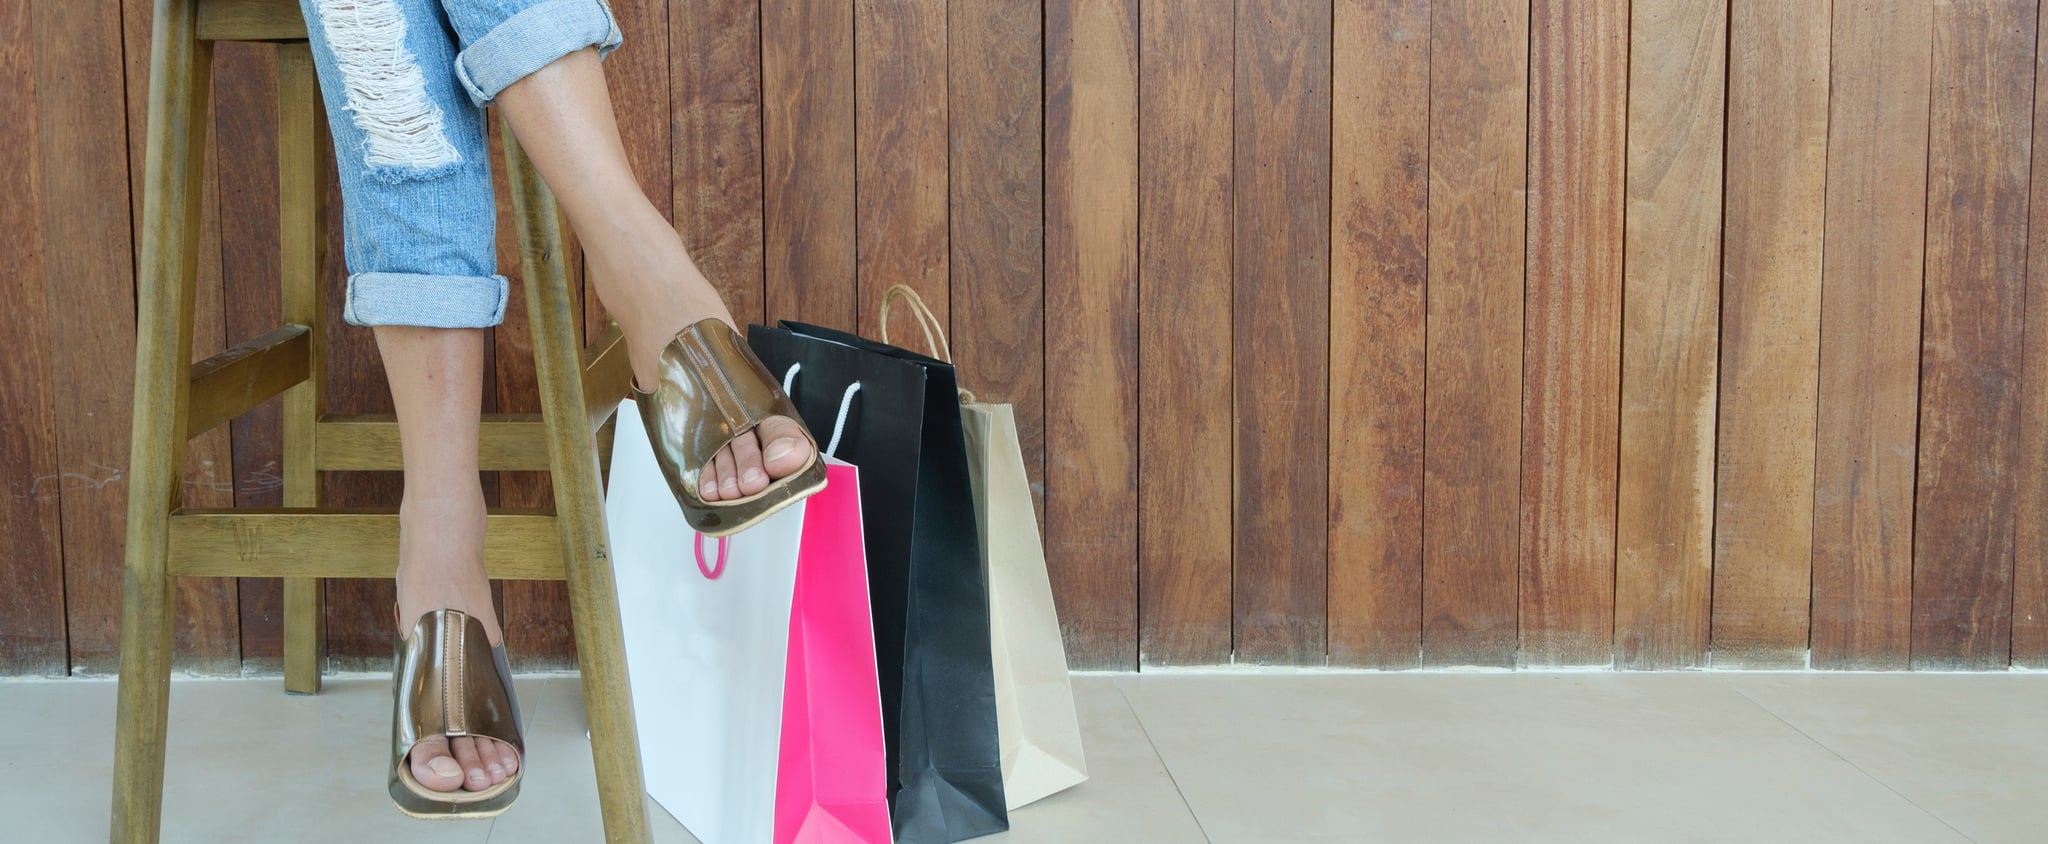 The Best Employee Discounts at Major Retail Stores